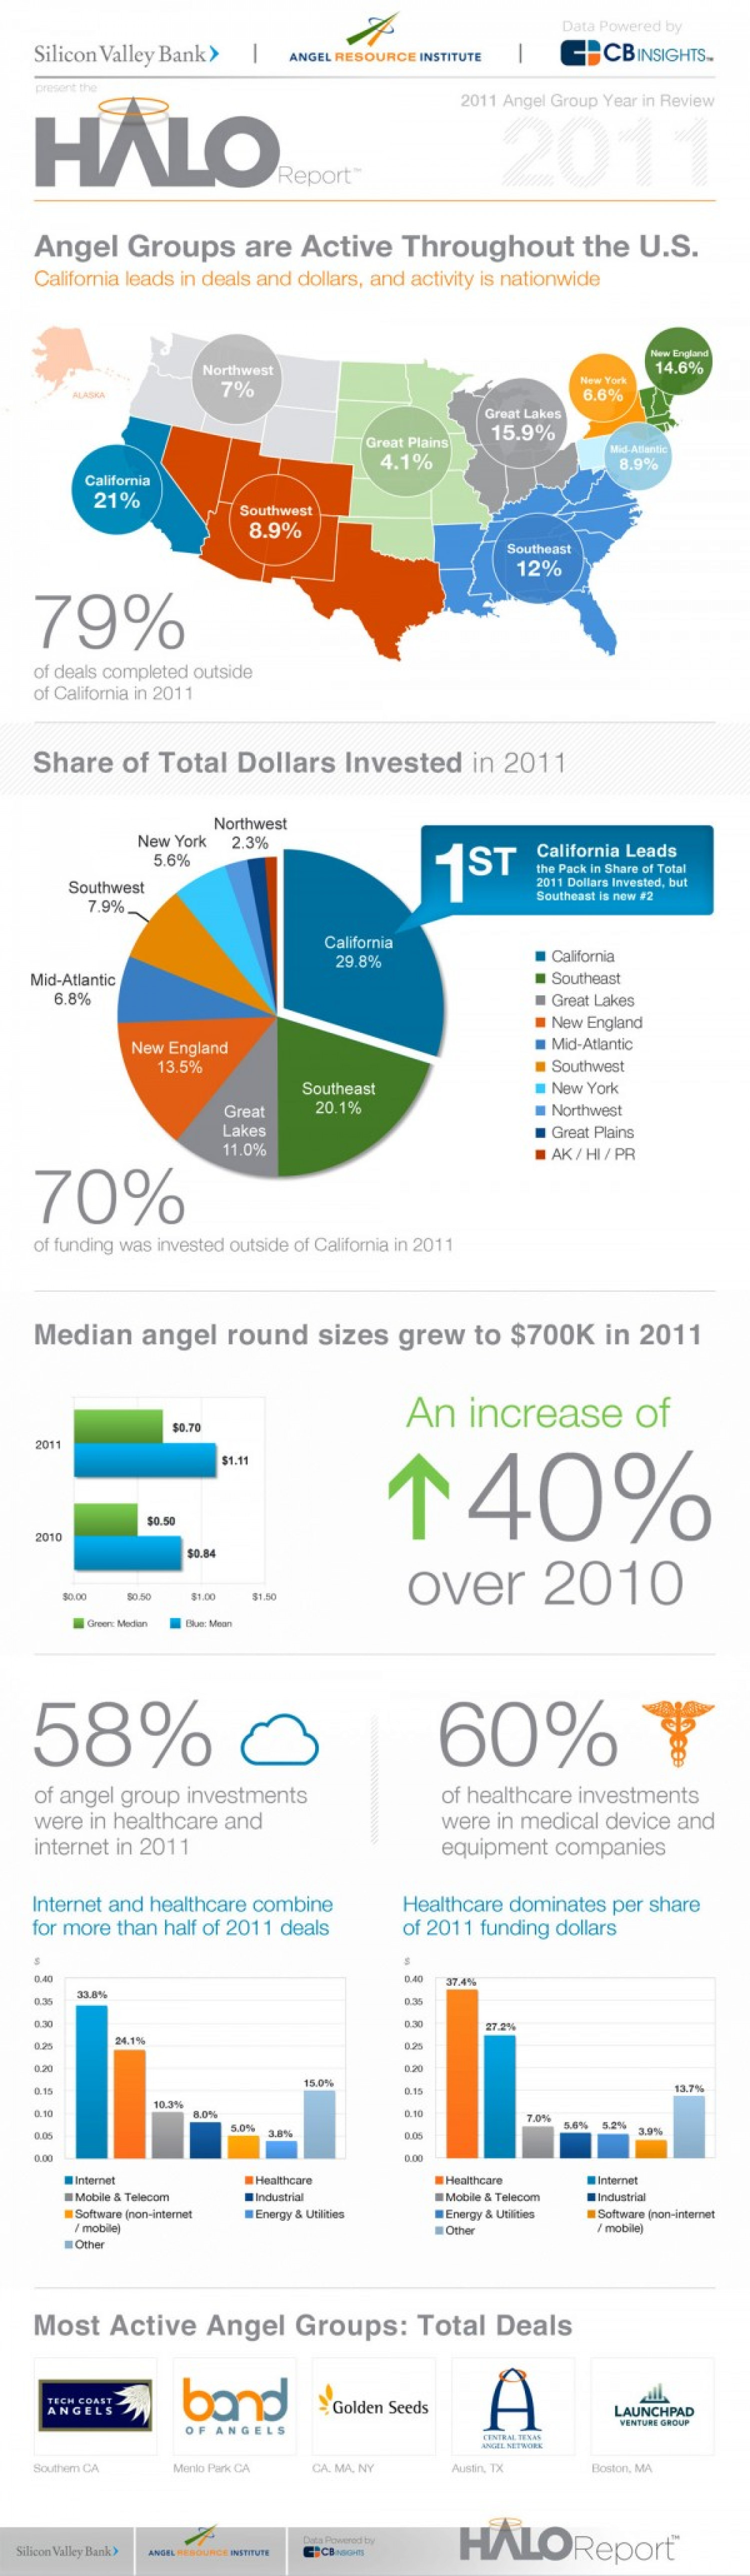 Angel Investment Data – 2011 HALO Report Infographic